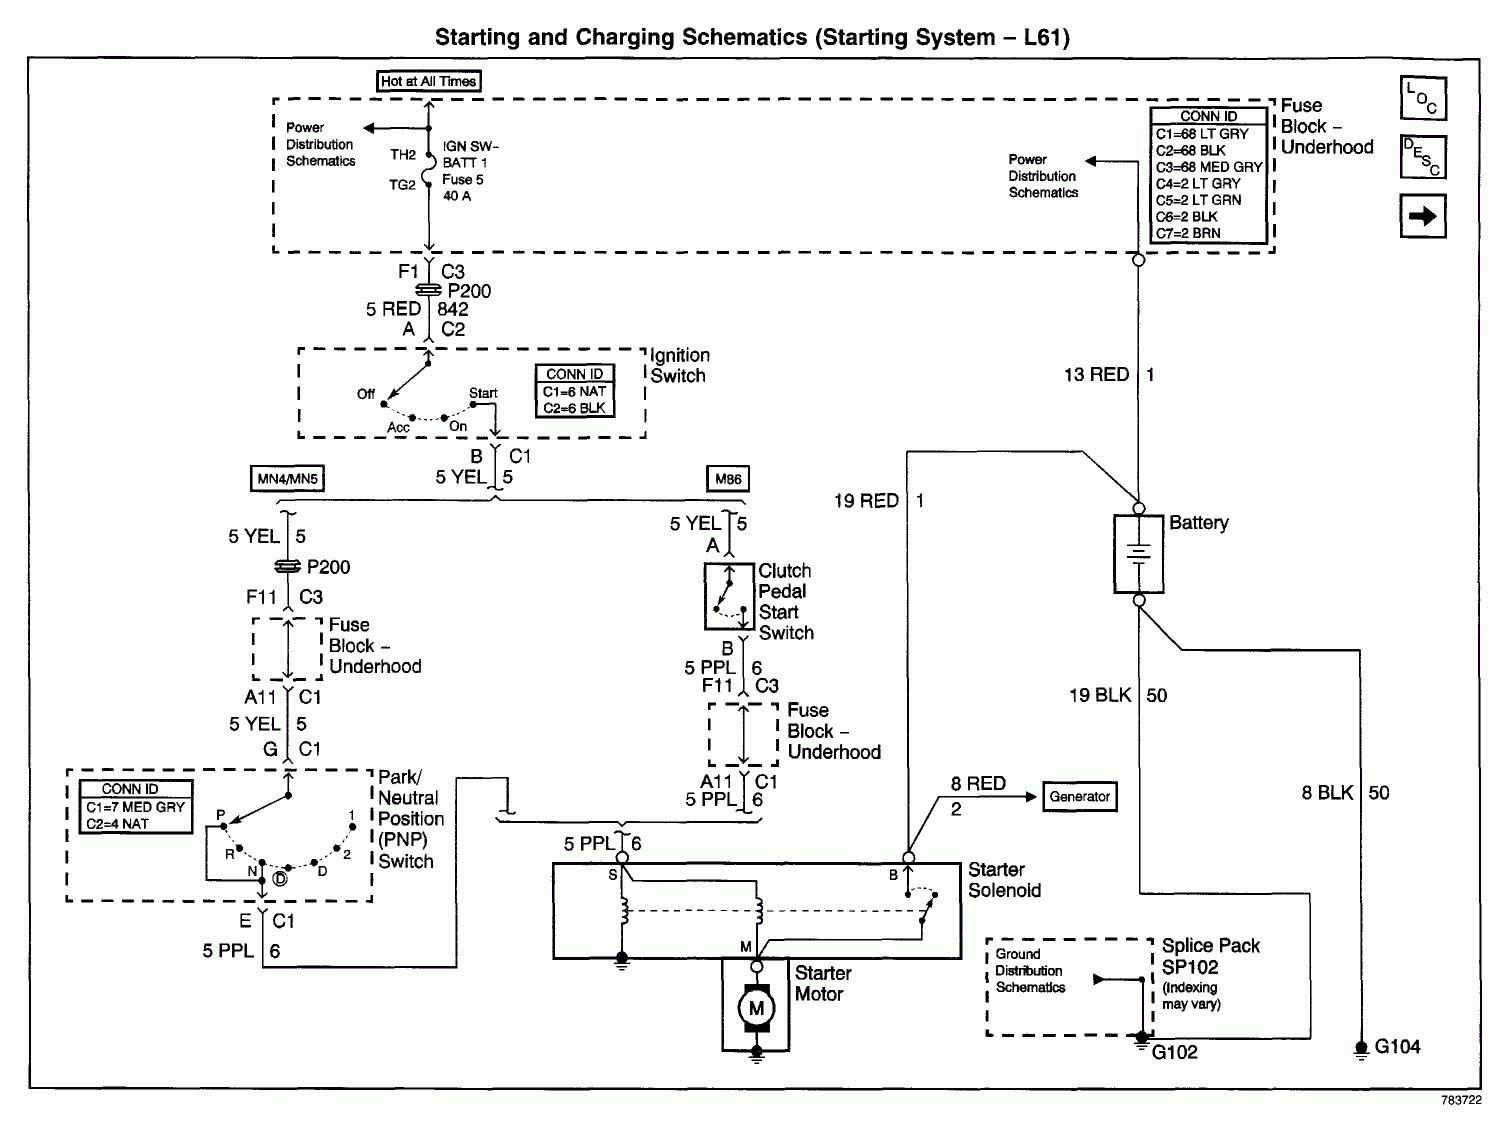 [DIAGRAM_38IU]  908A09 1999 Olds 88 Fuse Box | Wiring Library | 1999 Oldsmobile Cutl Fuse Box Diagram |  | Wiring Library